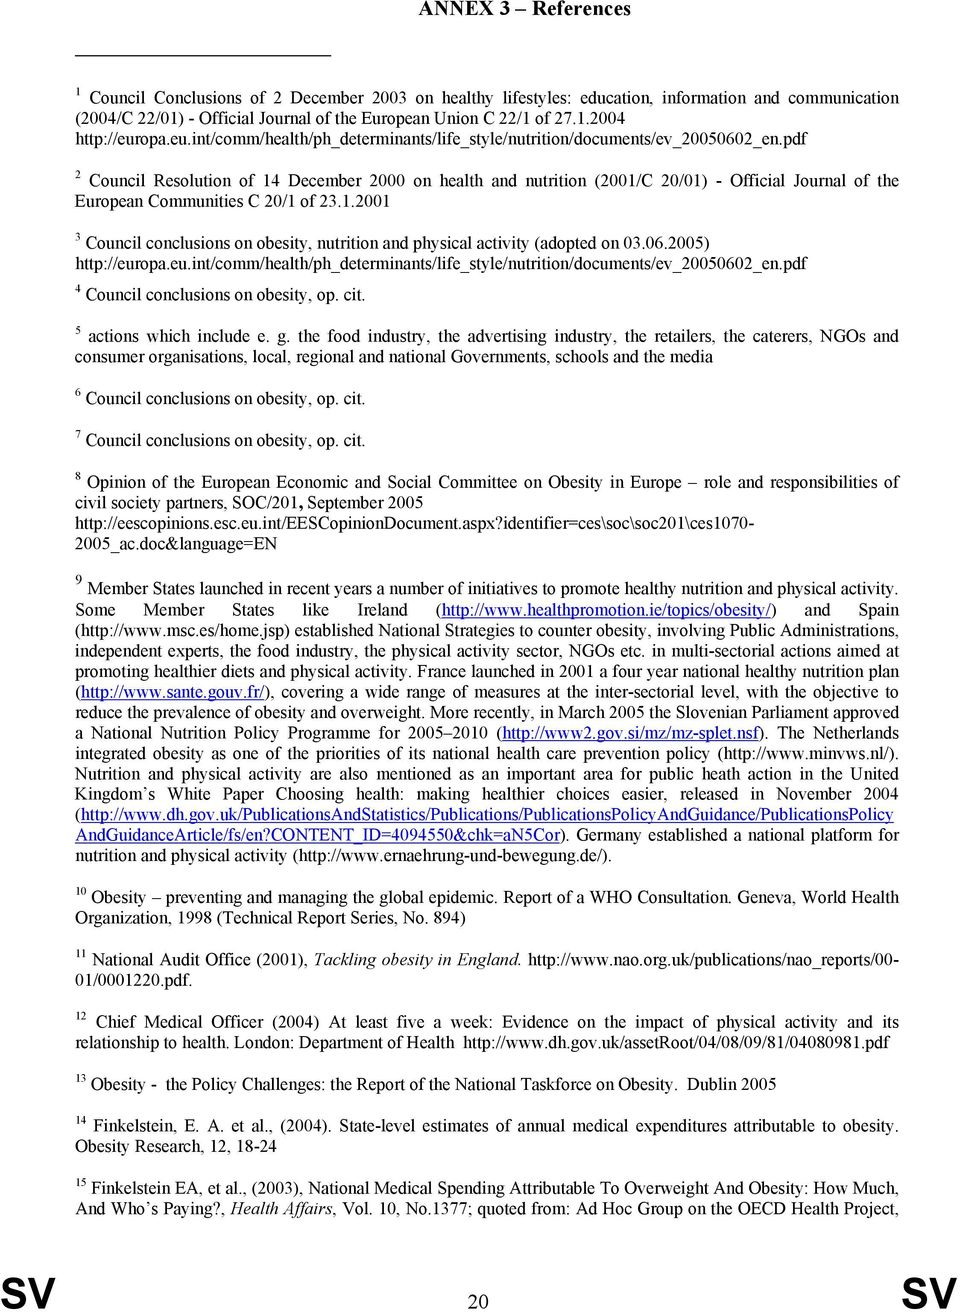 pdf 2 Council Resolution of 14 December 2000 on health and nutrition (2001/C 20/01) - Official Journal of the European Communities C 20/1 of 23.1.2001 3 Council conclusions on obesity, nutrition and physical activity (adopted on 03.